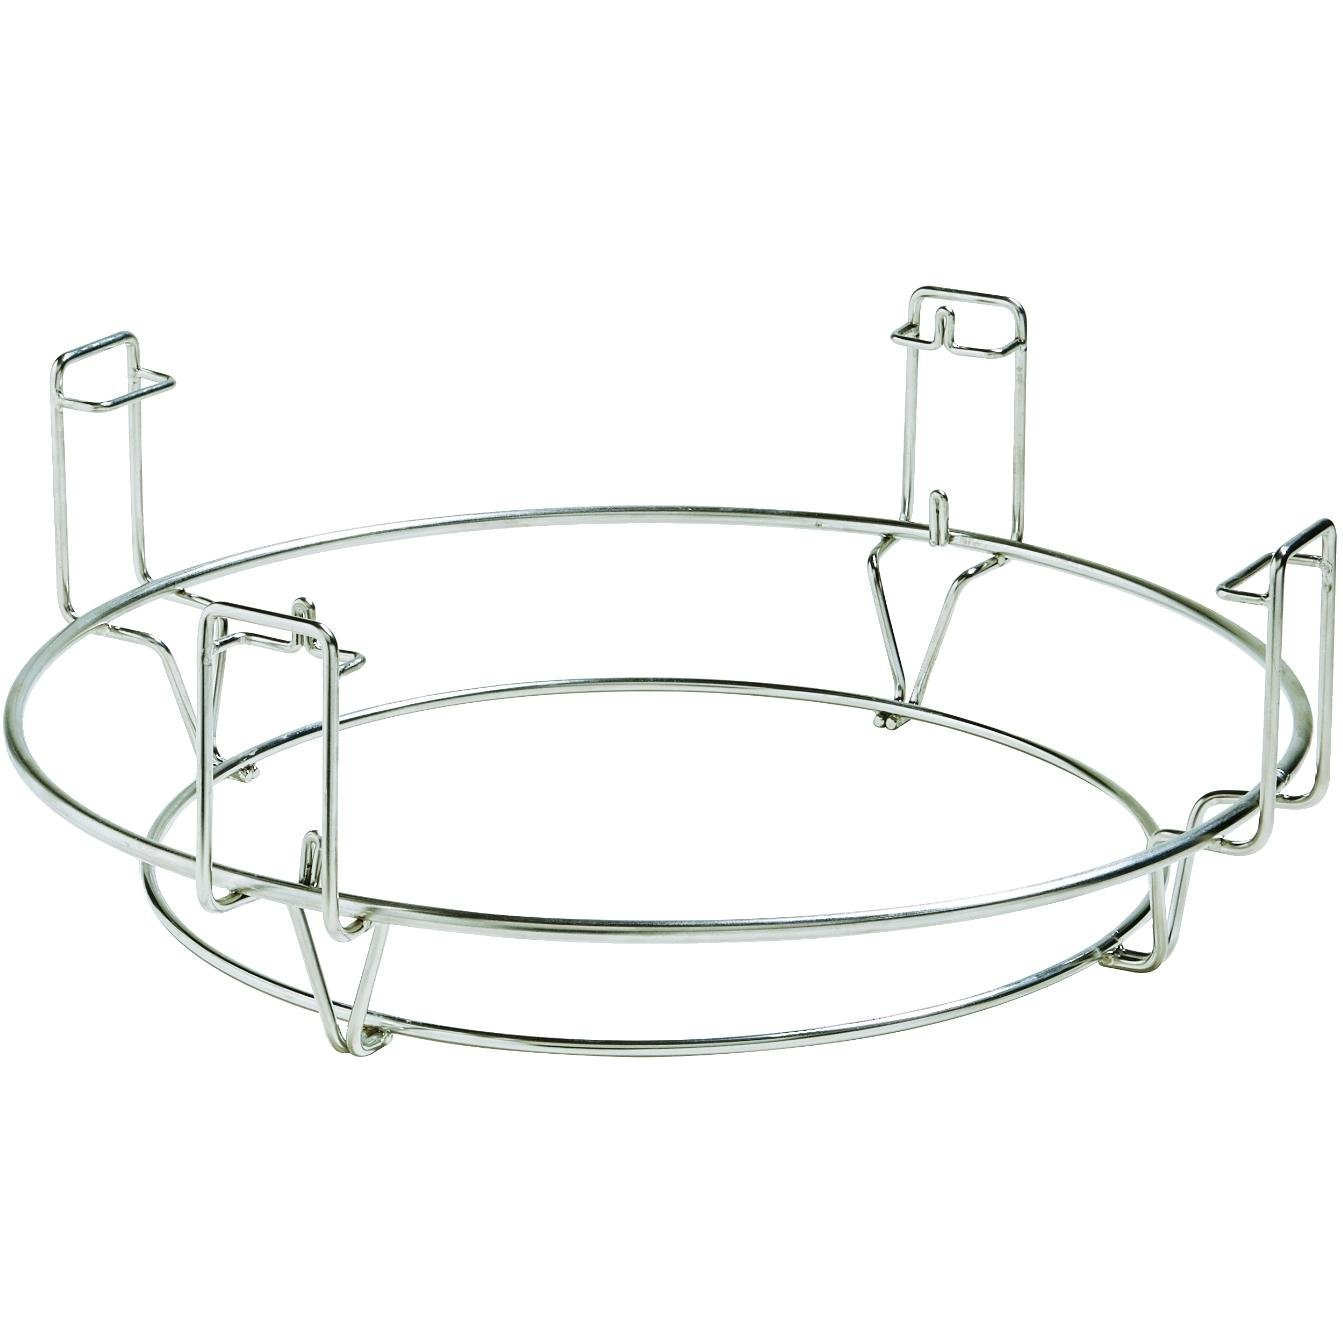 Aura Outdoor Products AOP-PZBR PRO-Zone Cooking System Base Rack for Large Big Green Egg, Classic Joe by Aura Outdoor Products